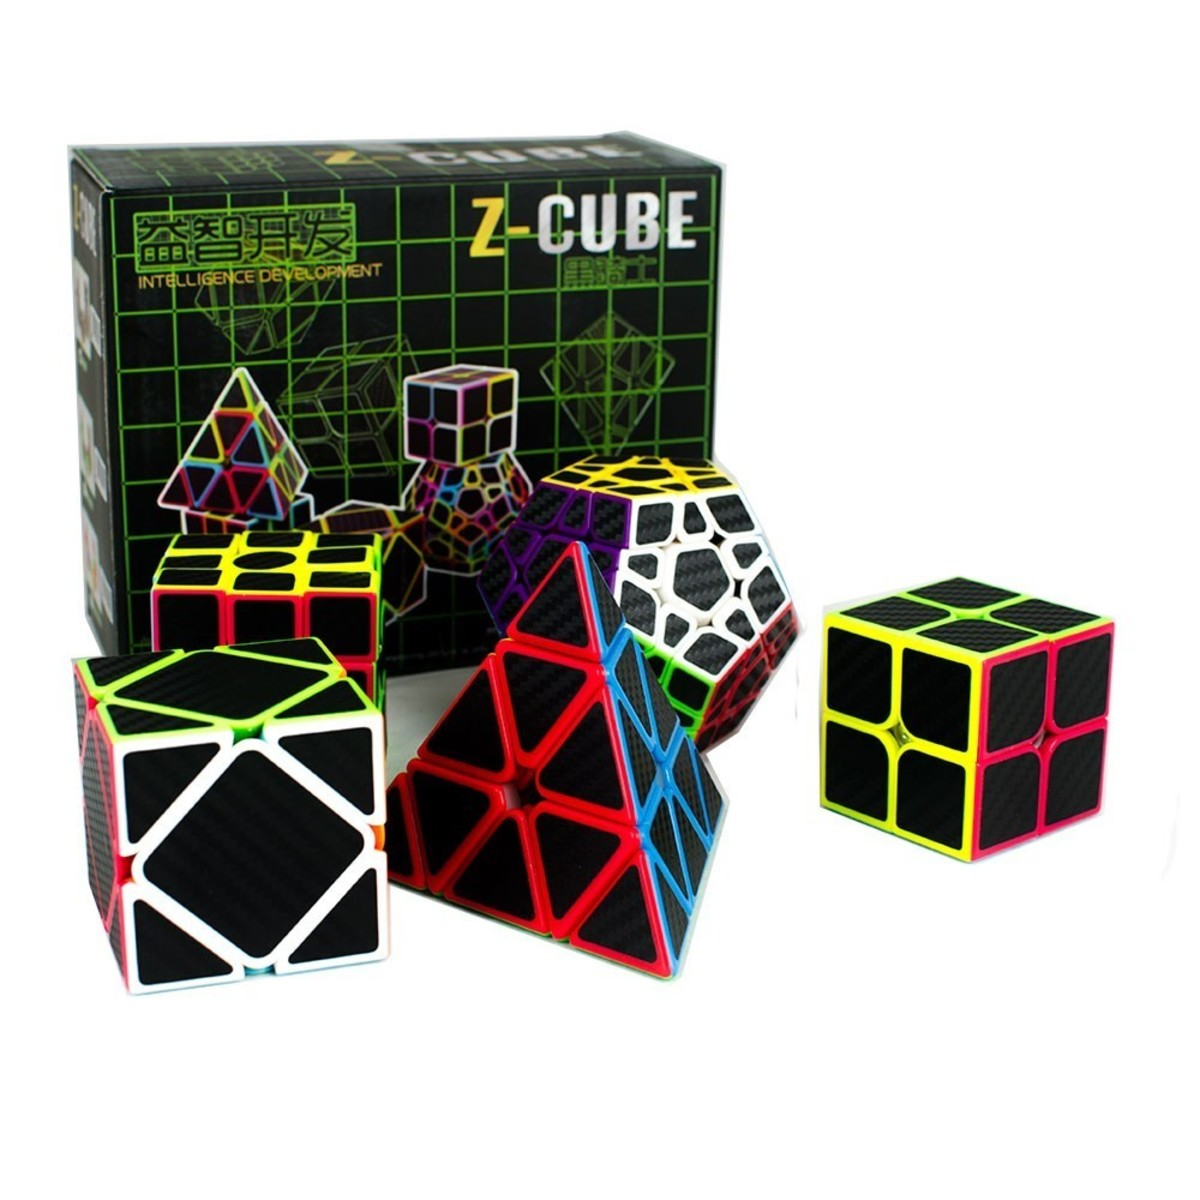 Set 5 Cubos Fibra Carbono